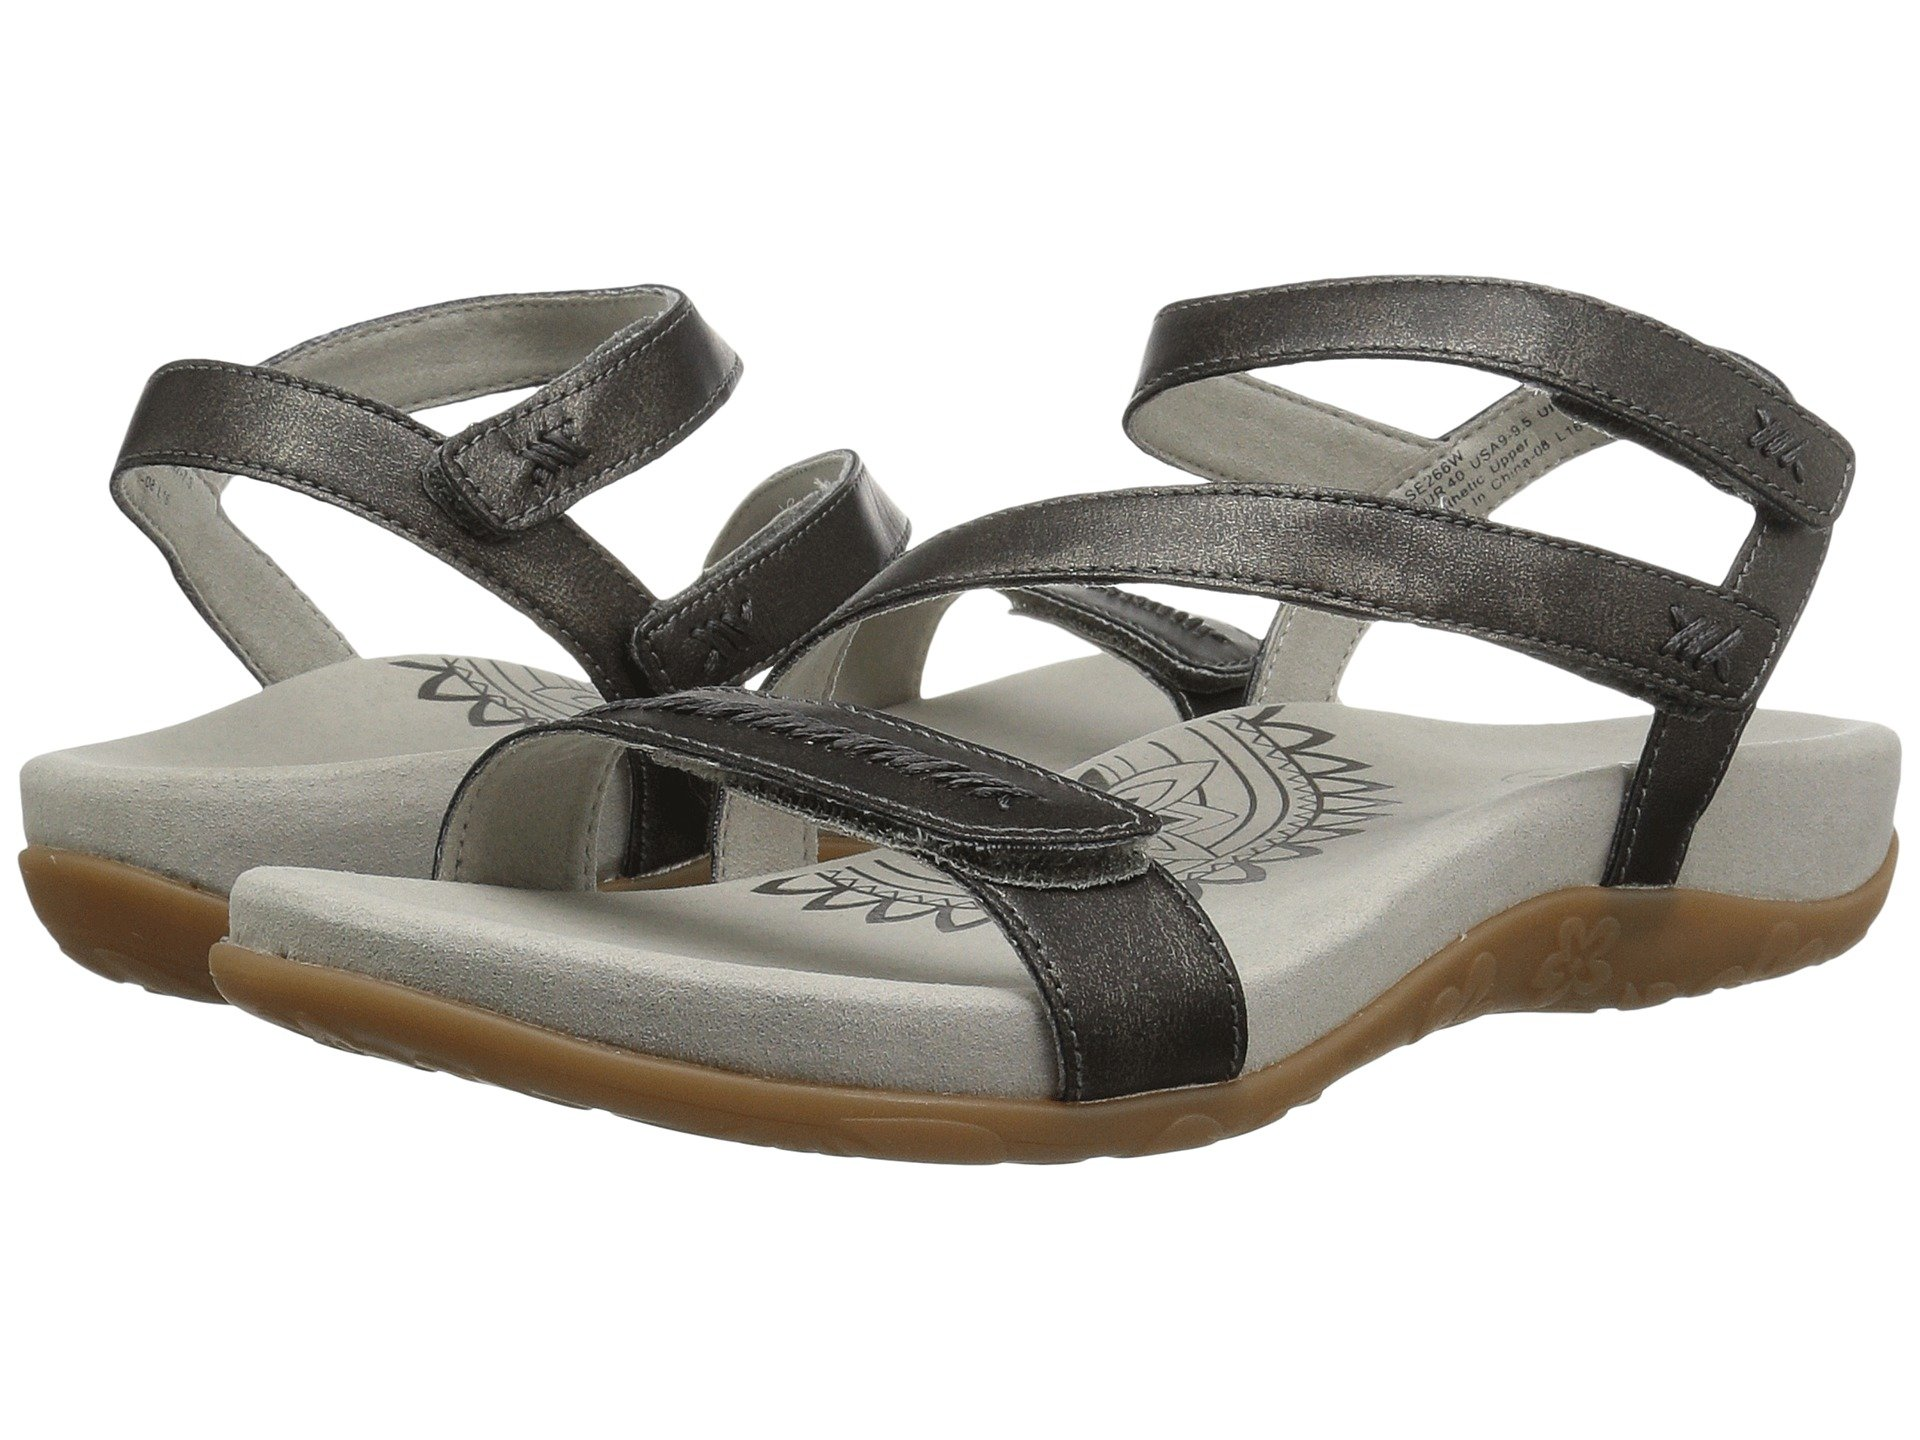 06473e881563c0 Women s Pewter Sandals + FREE SHIPPING